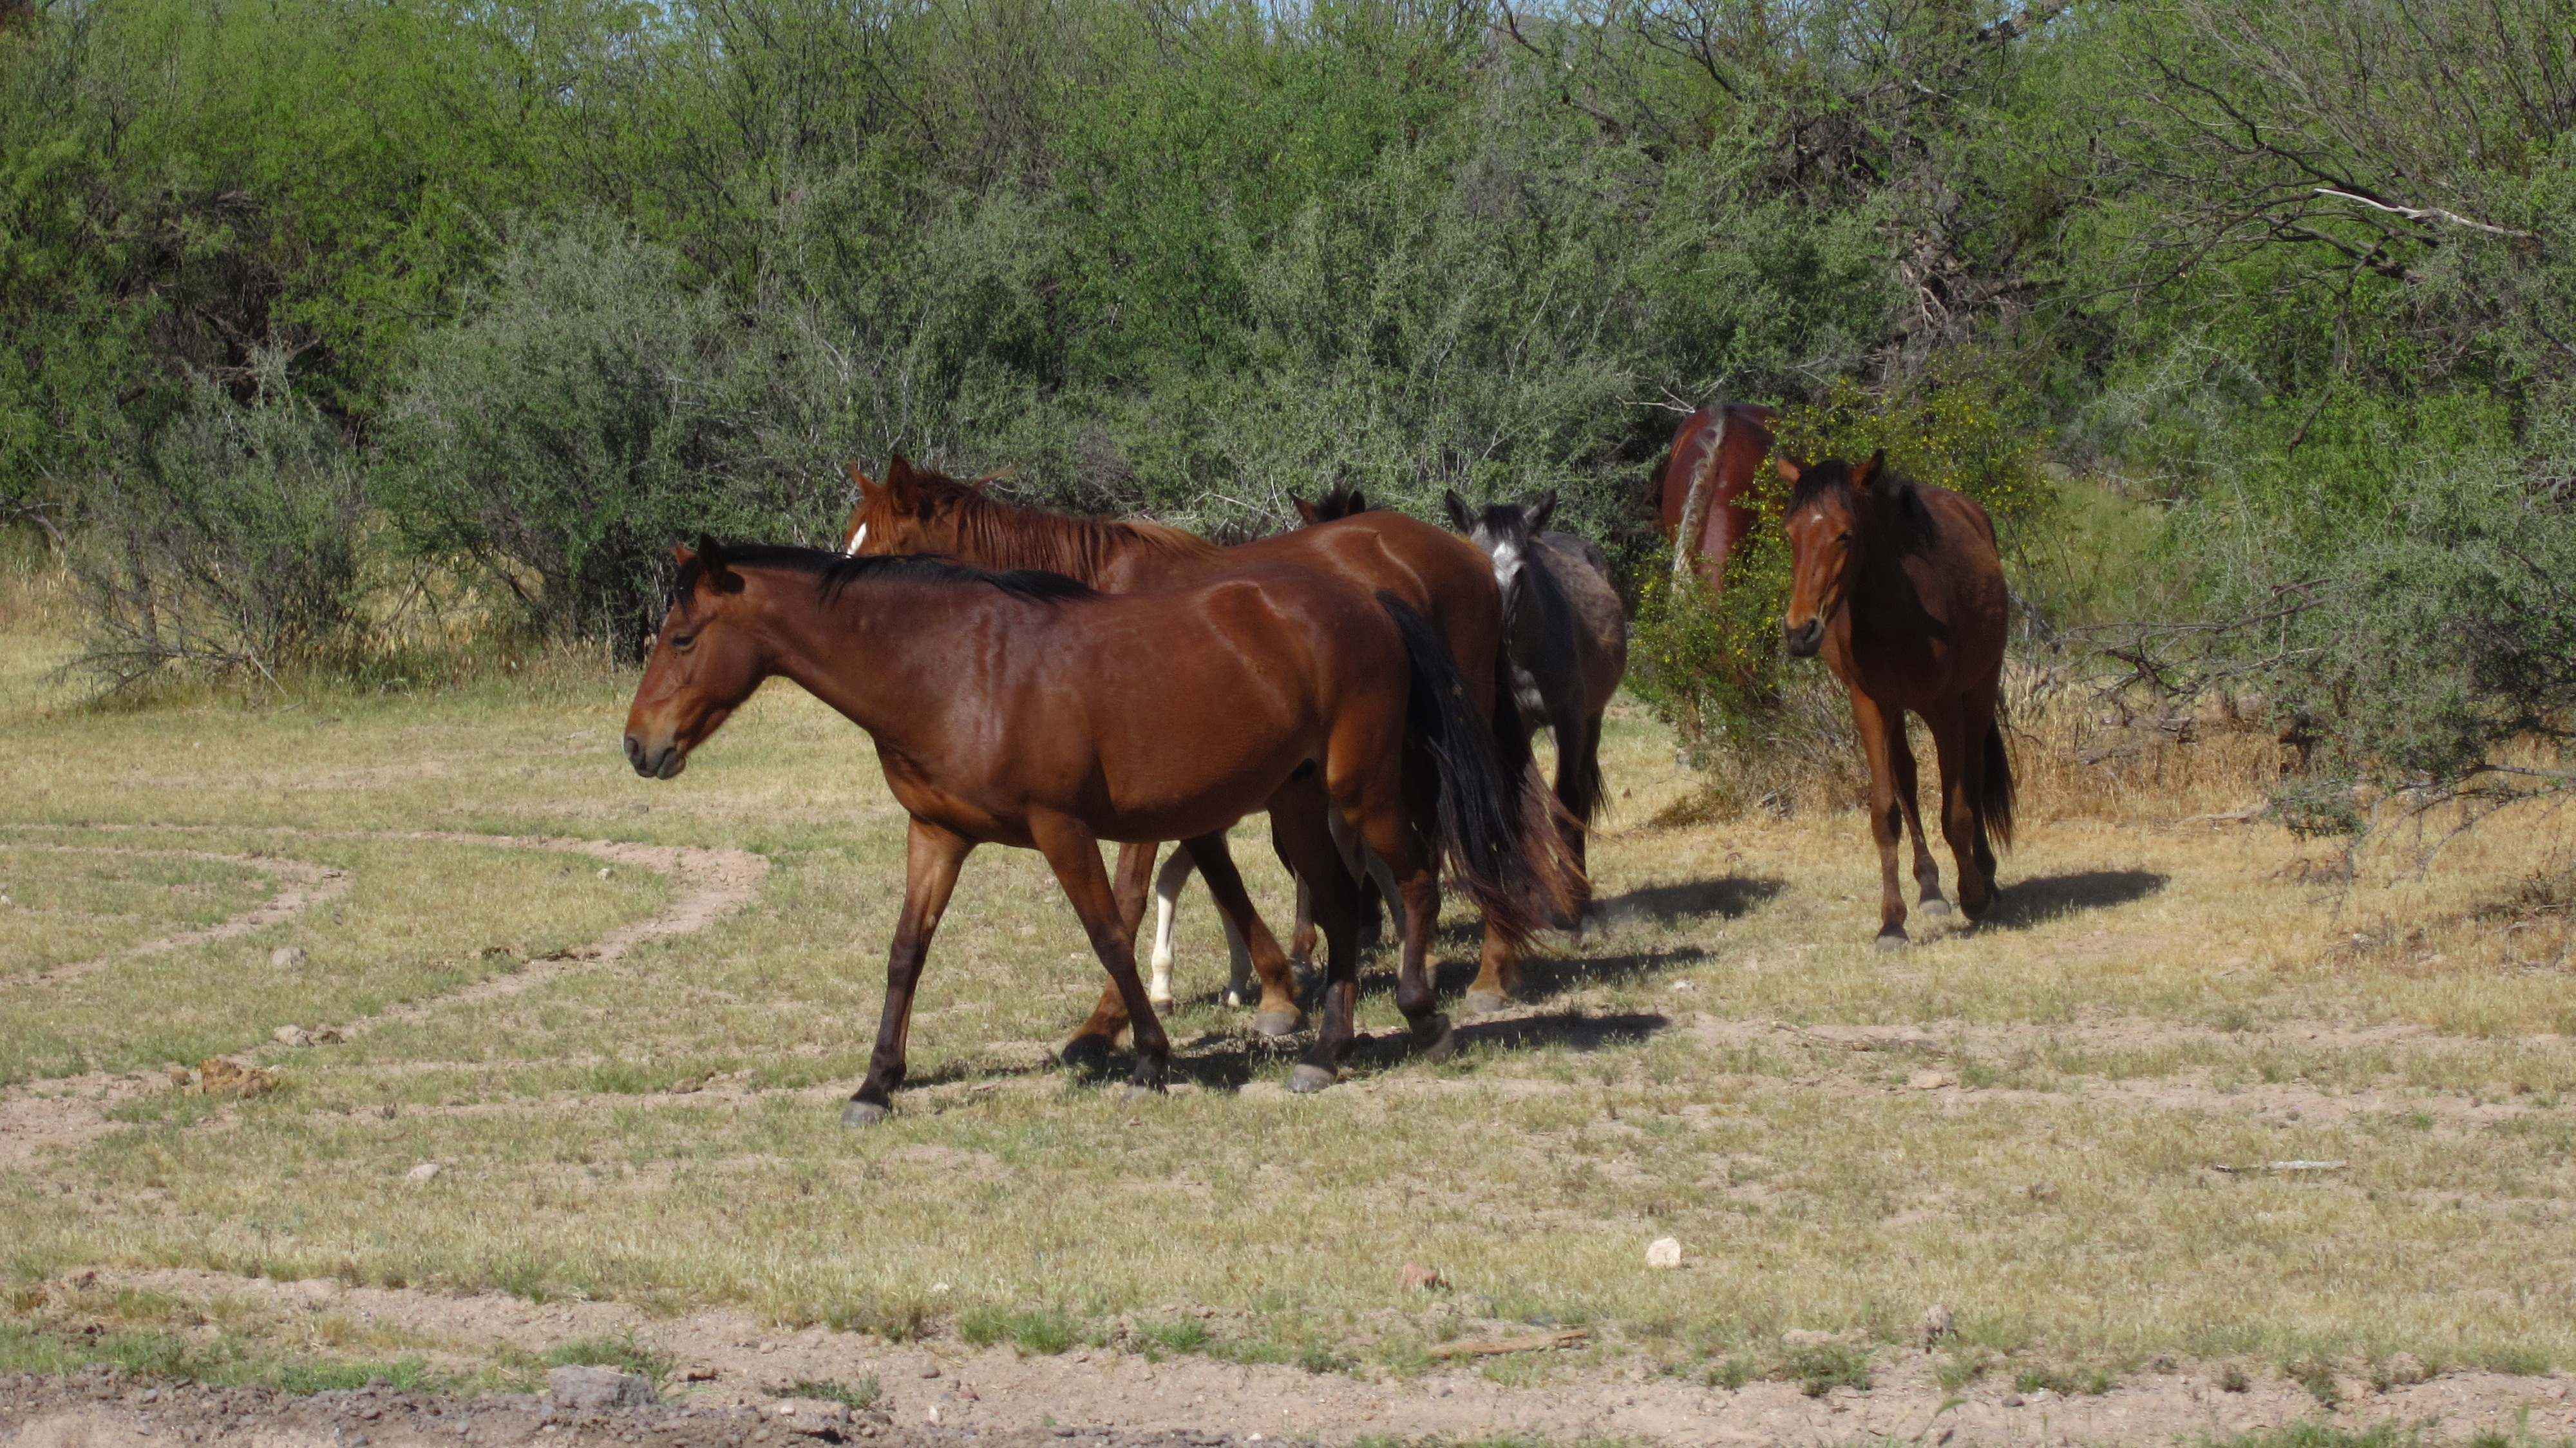 Wild mustangs from the area